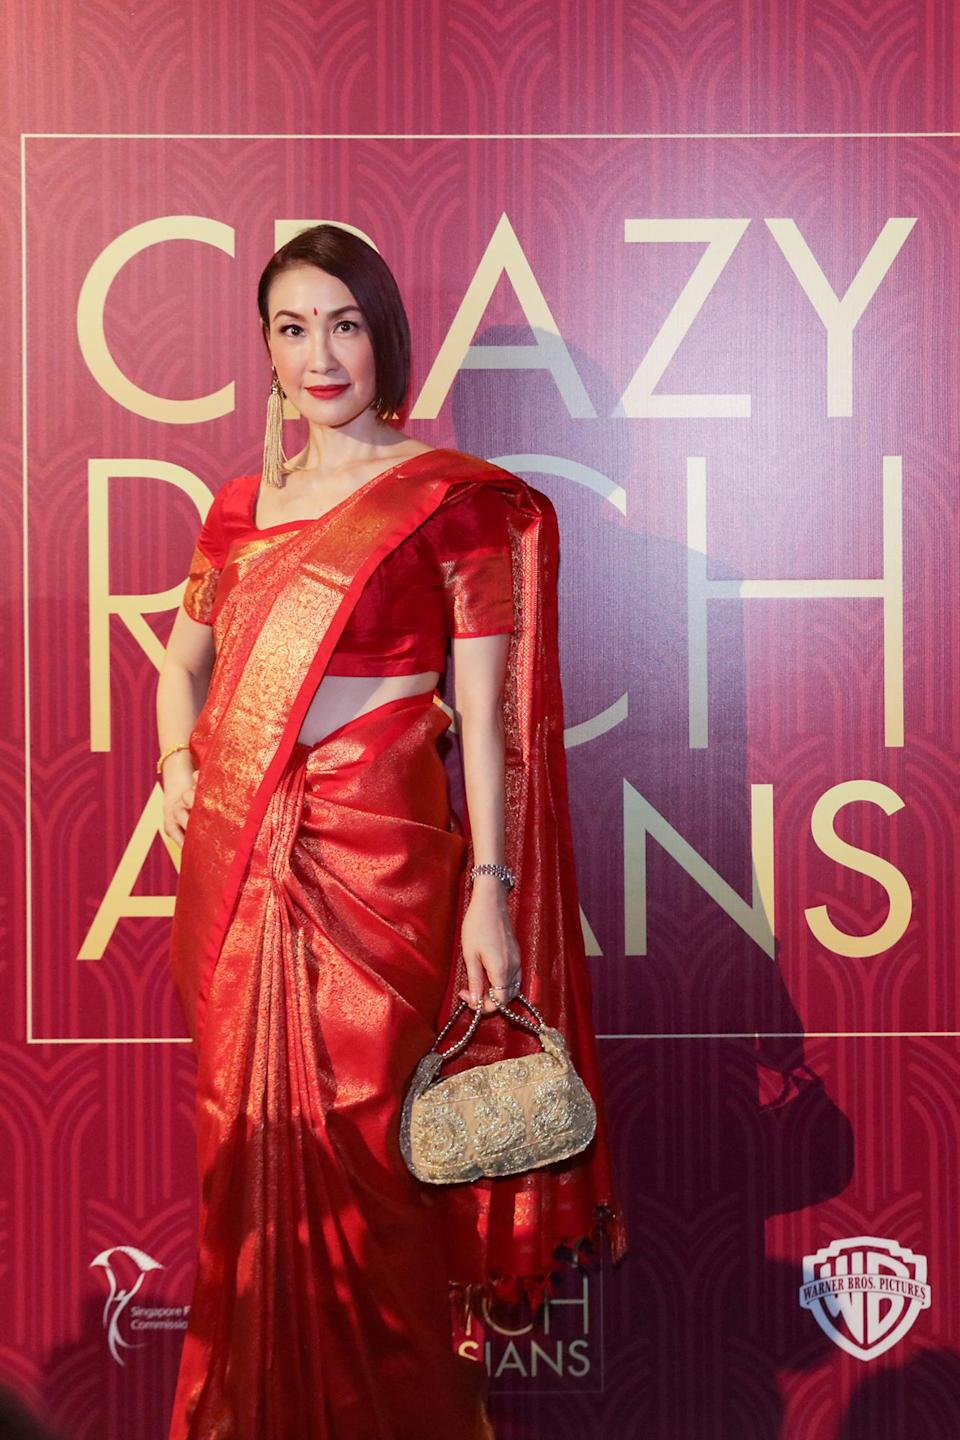 <p>Singaporean actress Amy Cheng poses for photographers at the Singapore premiere of 'Crazy Rich Asians' on 21 August 2018. (PHOTO: Yahoo Lifestyle Singapore) </p>